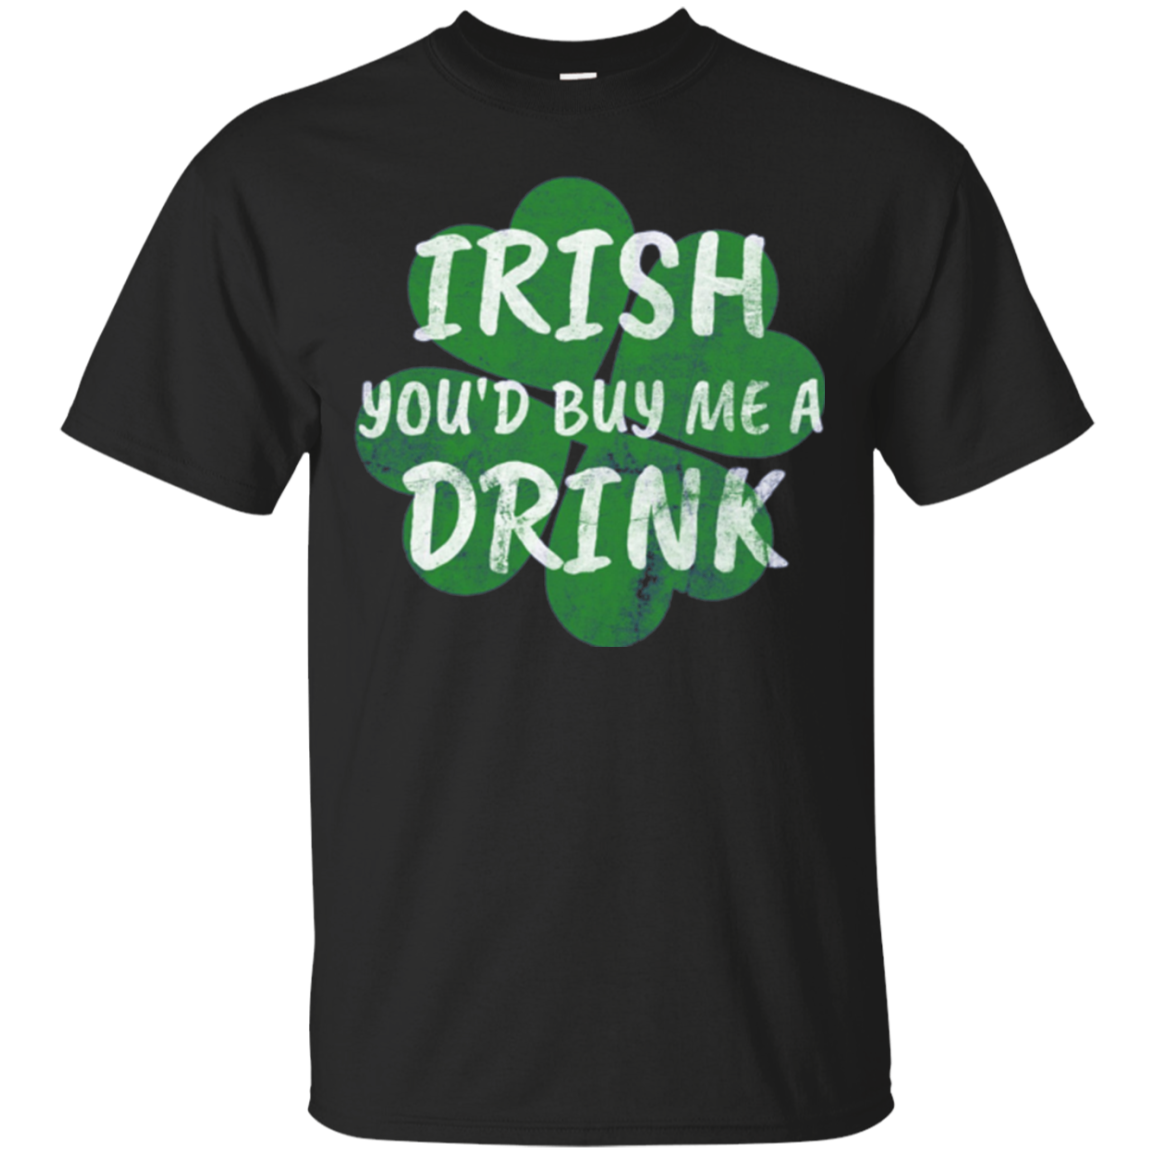 Irish You'd Buy Me a Drink T-Shirt Funny St. Patrick's Day